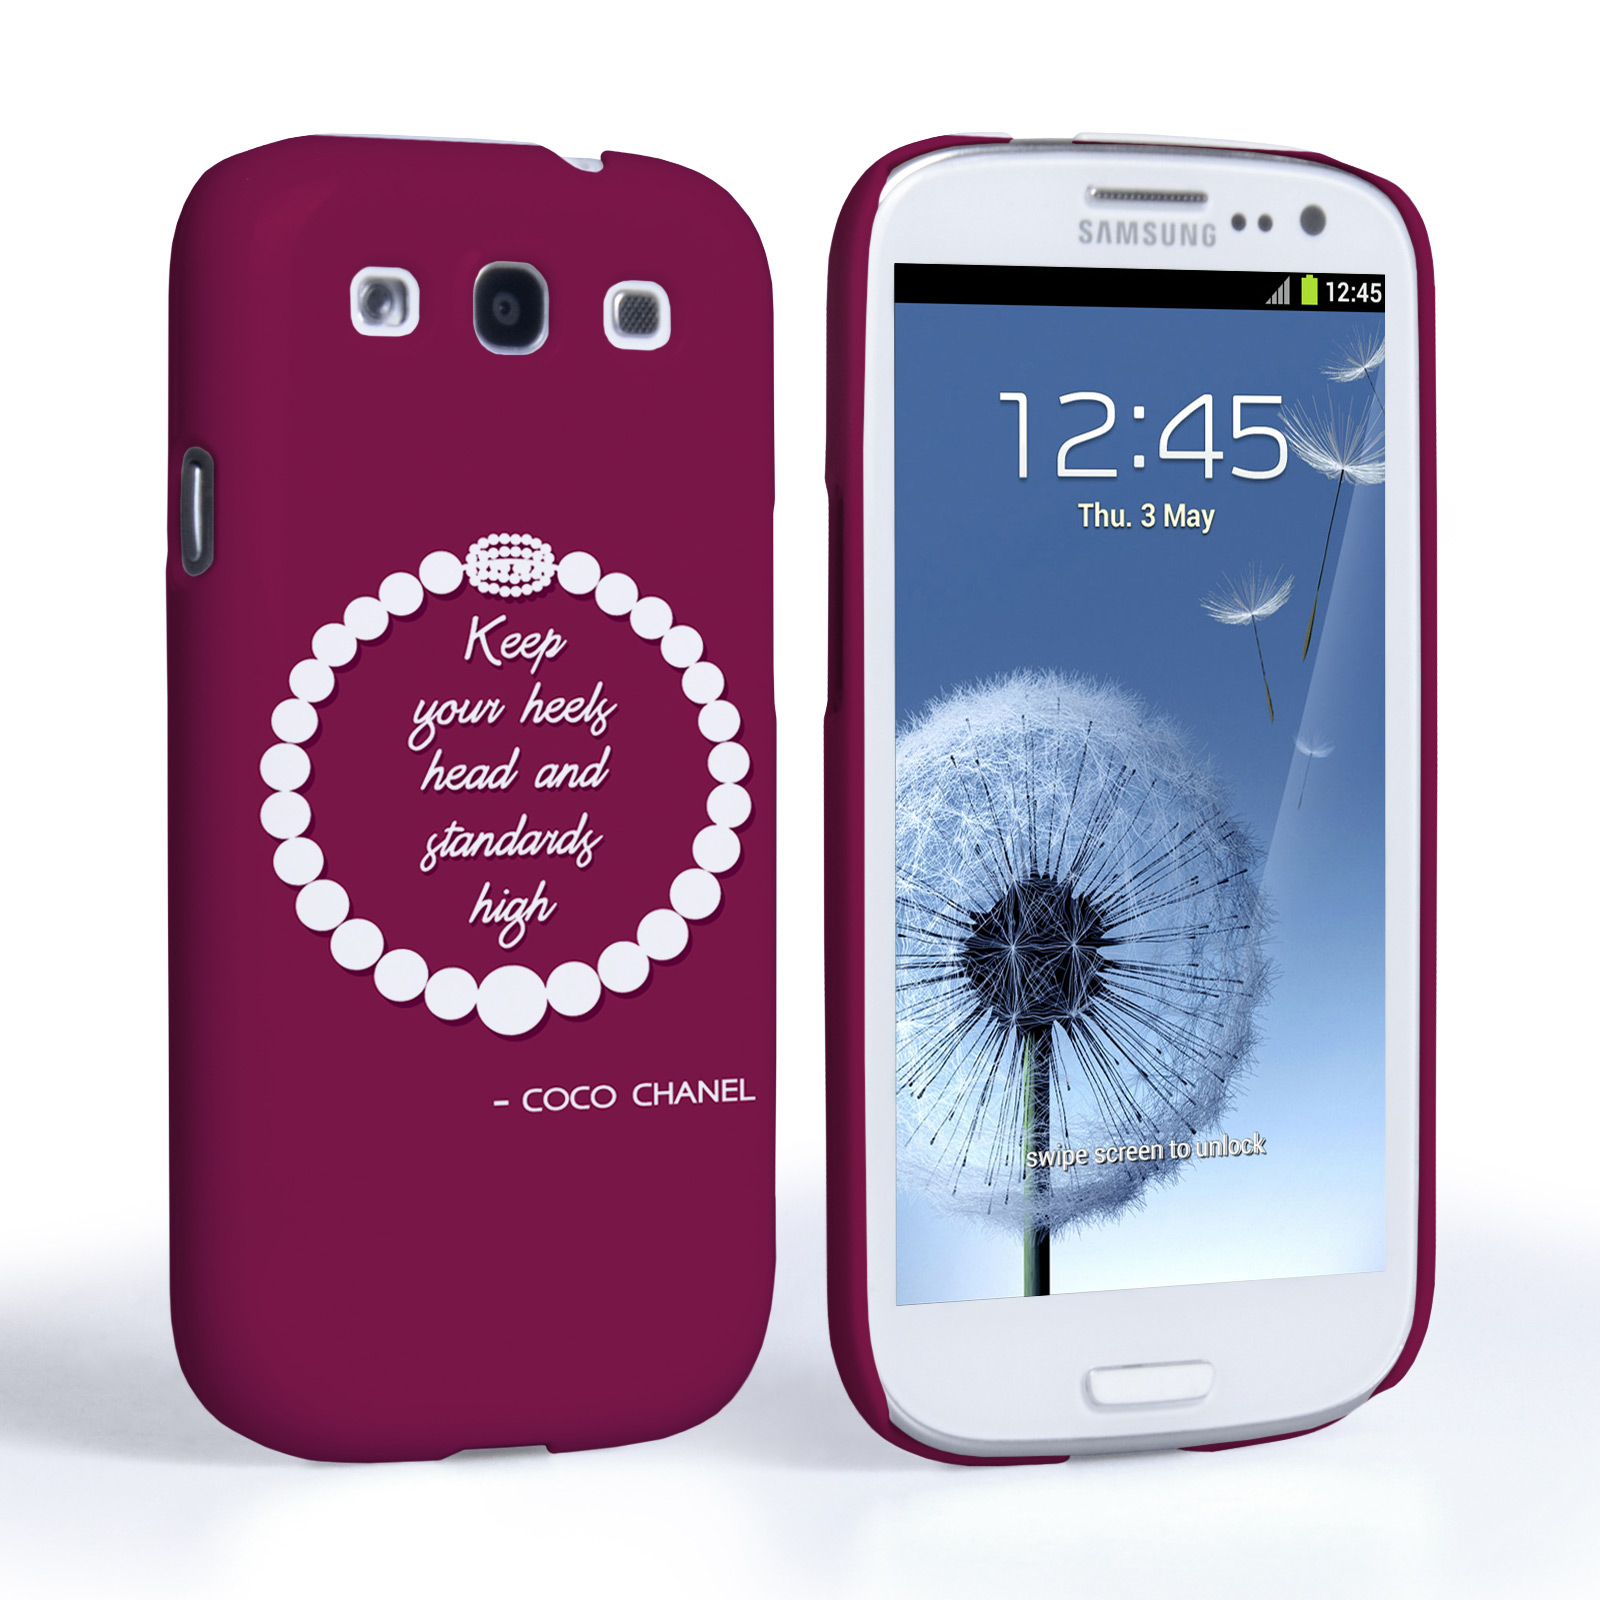 Caseflex Samsung Galaxy S3 Chanel Diamond And Pearls Quote Case